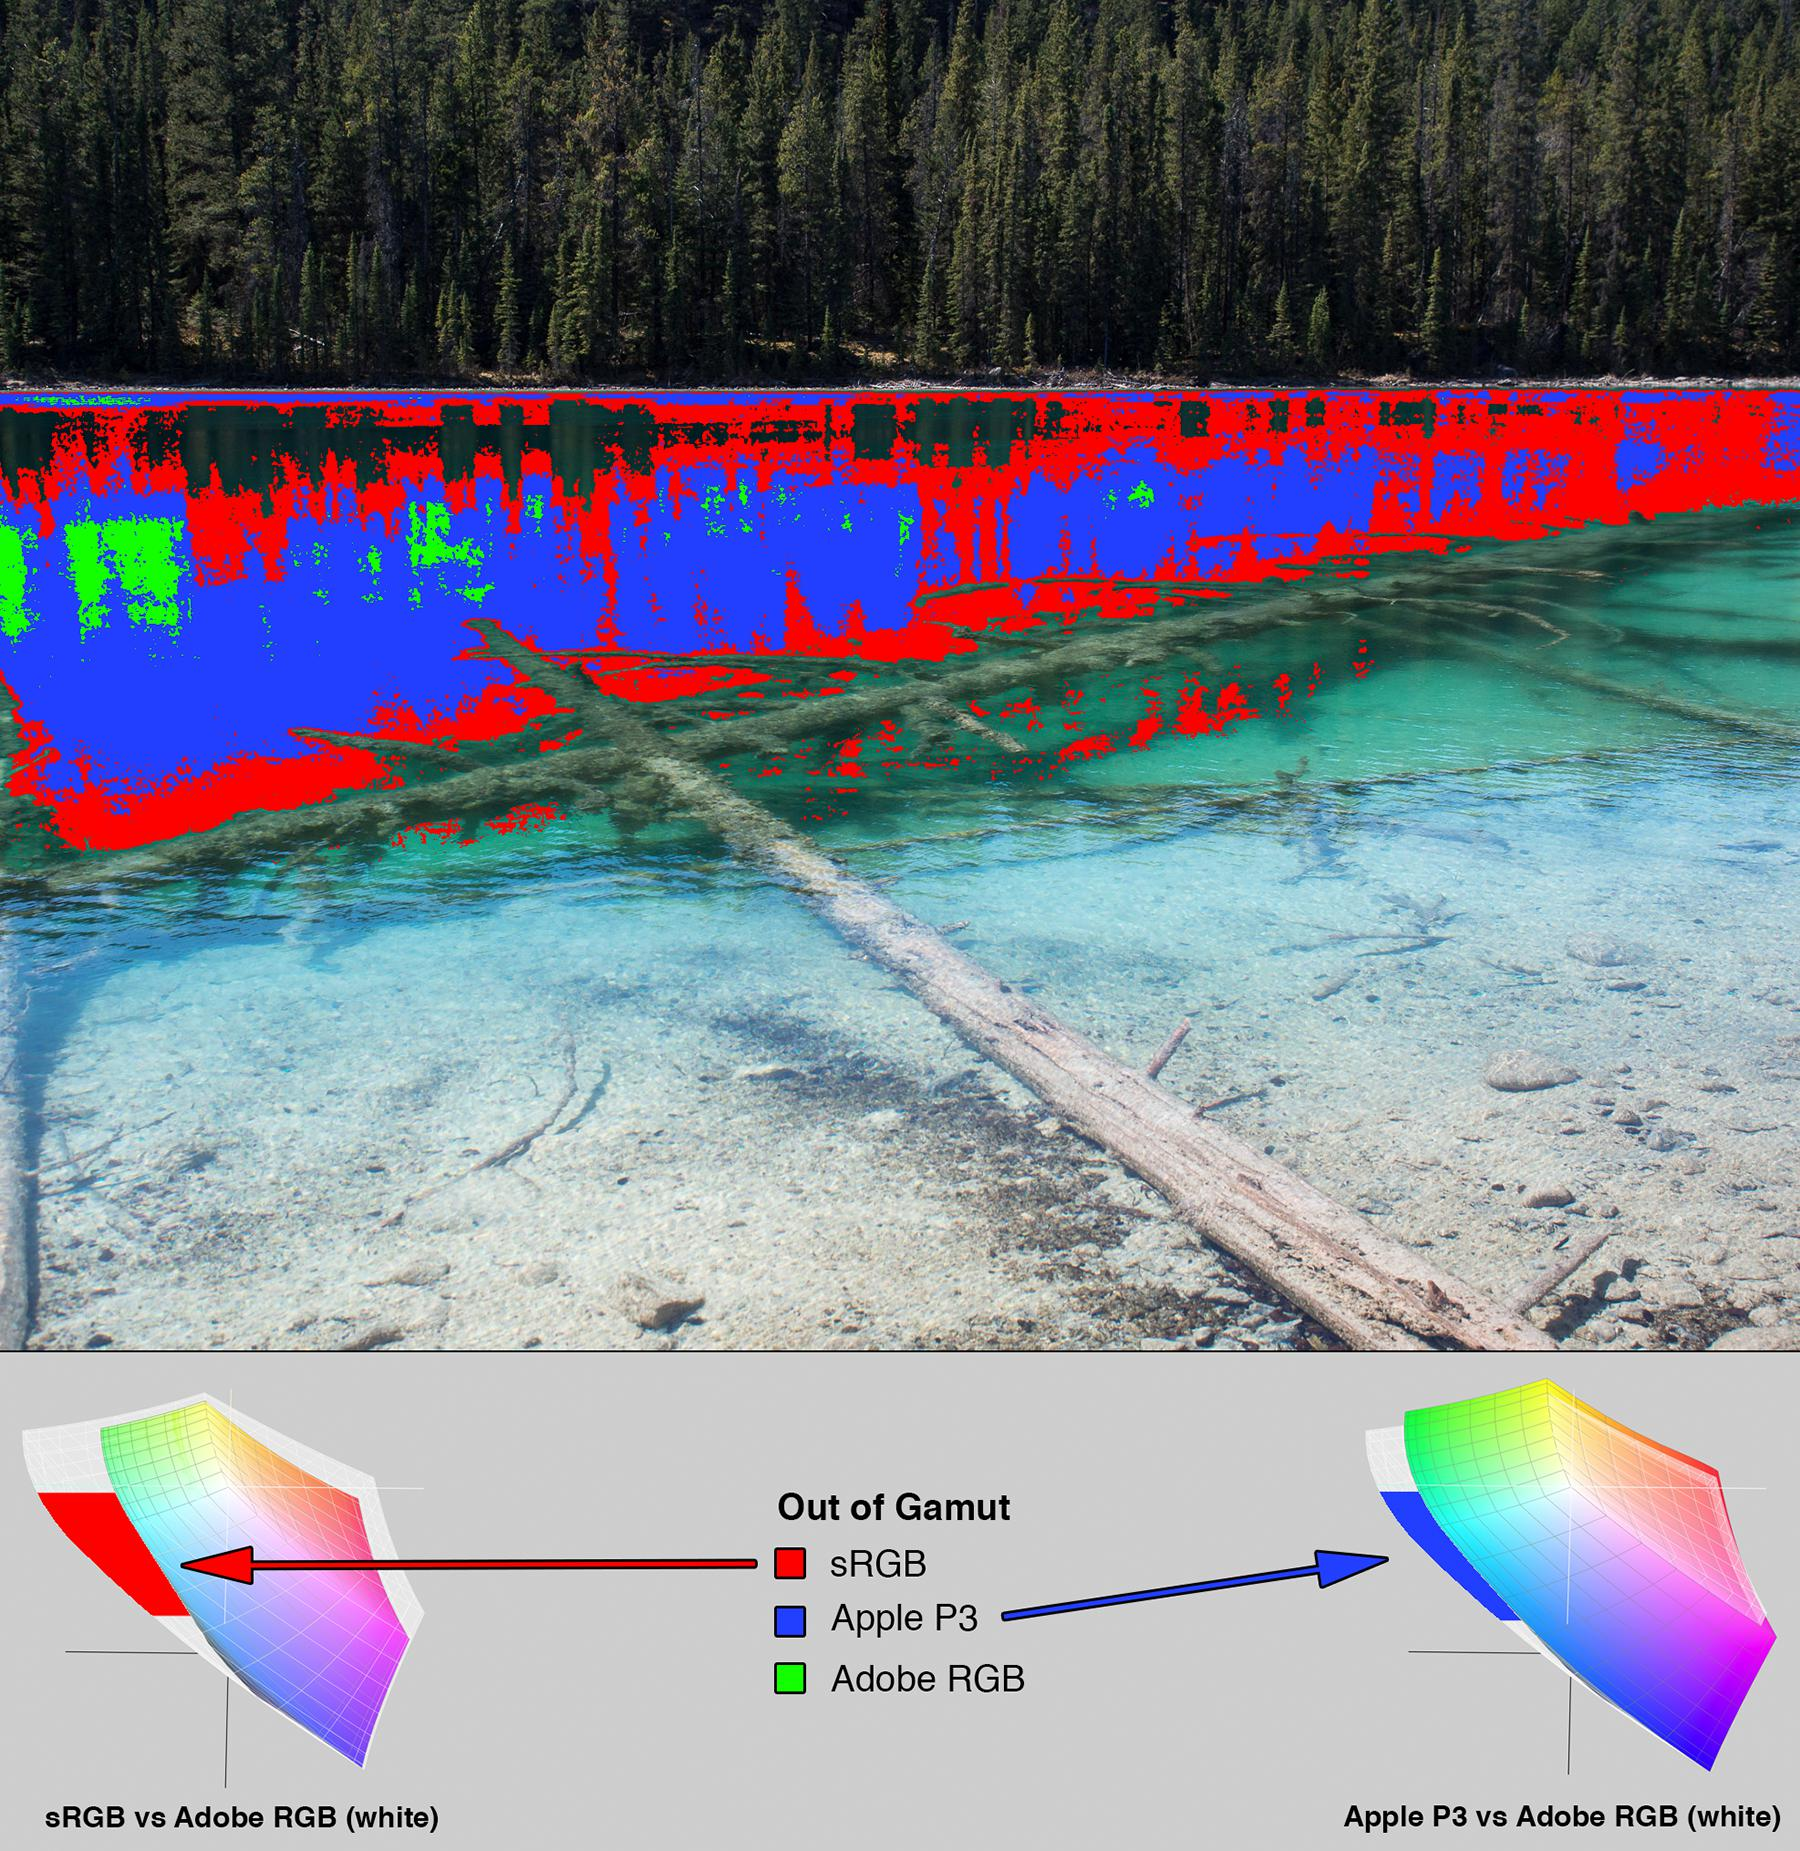 Lake photo from Figure 3. Overlaid with a heat map indicating which ares of the image are out of gamut. At the bottom of the image is a section with 3D LAB plots showing how the colorspaces differ.